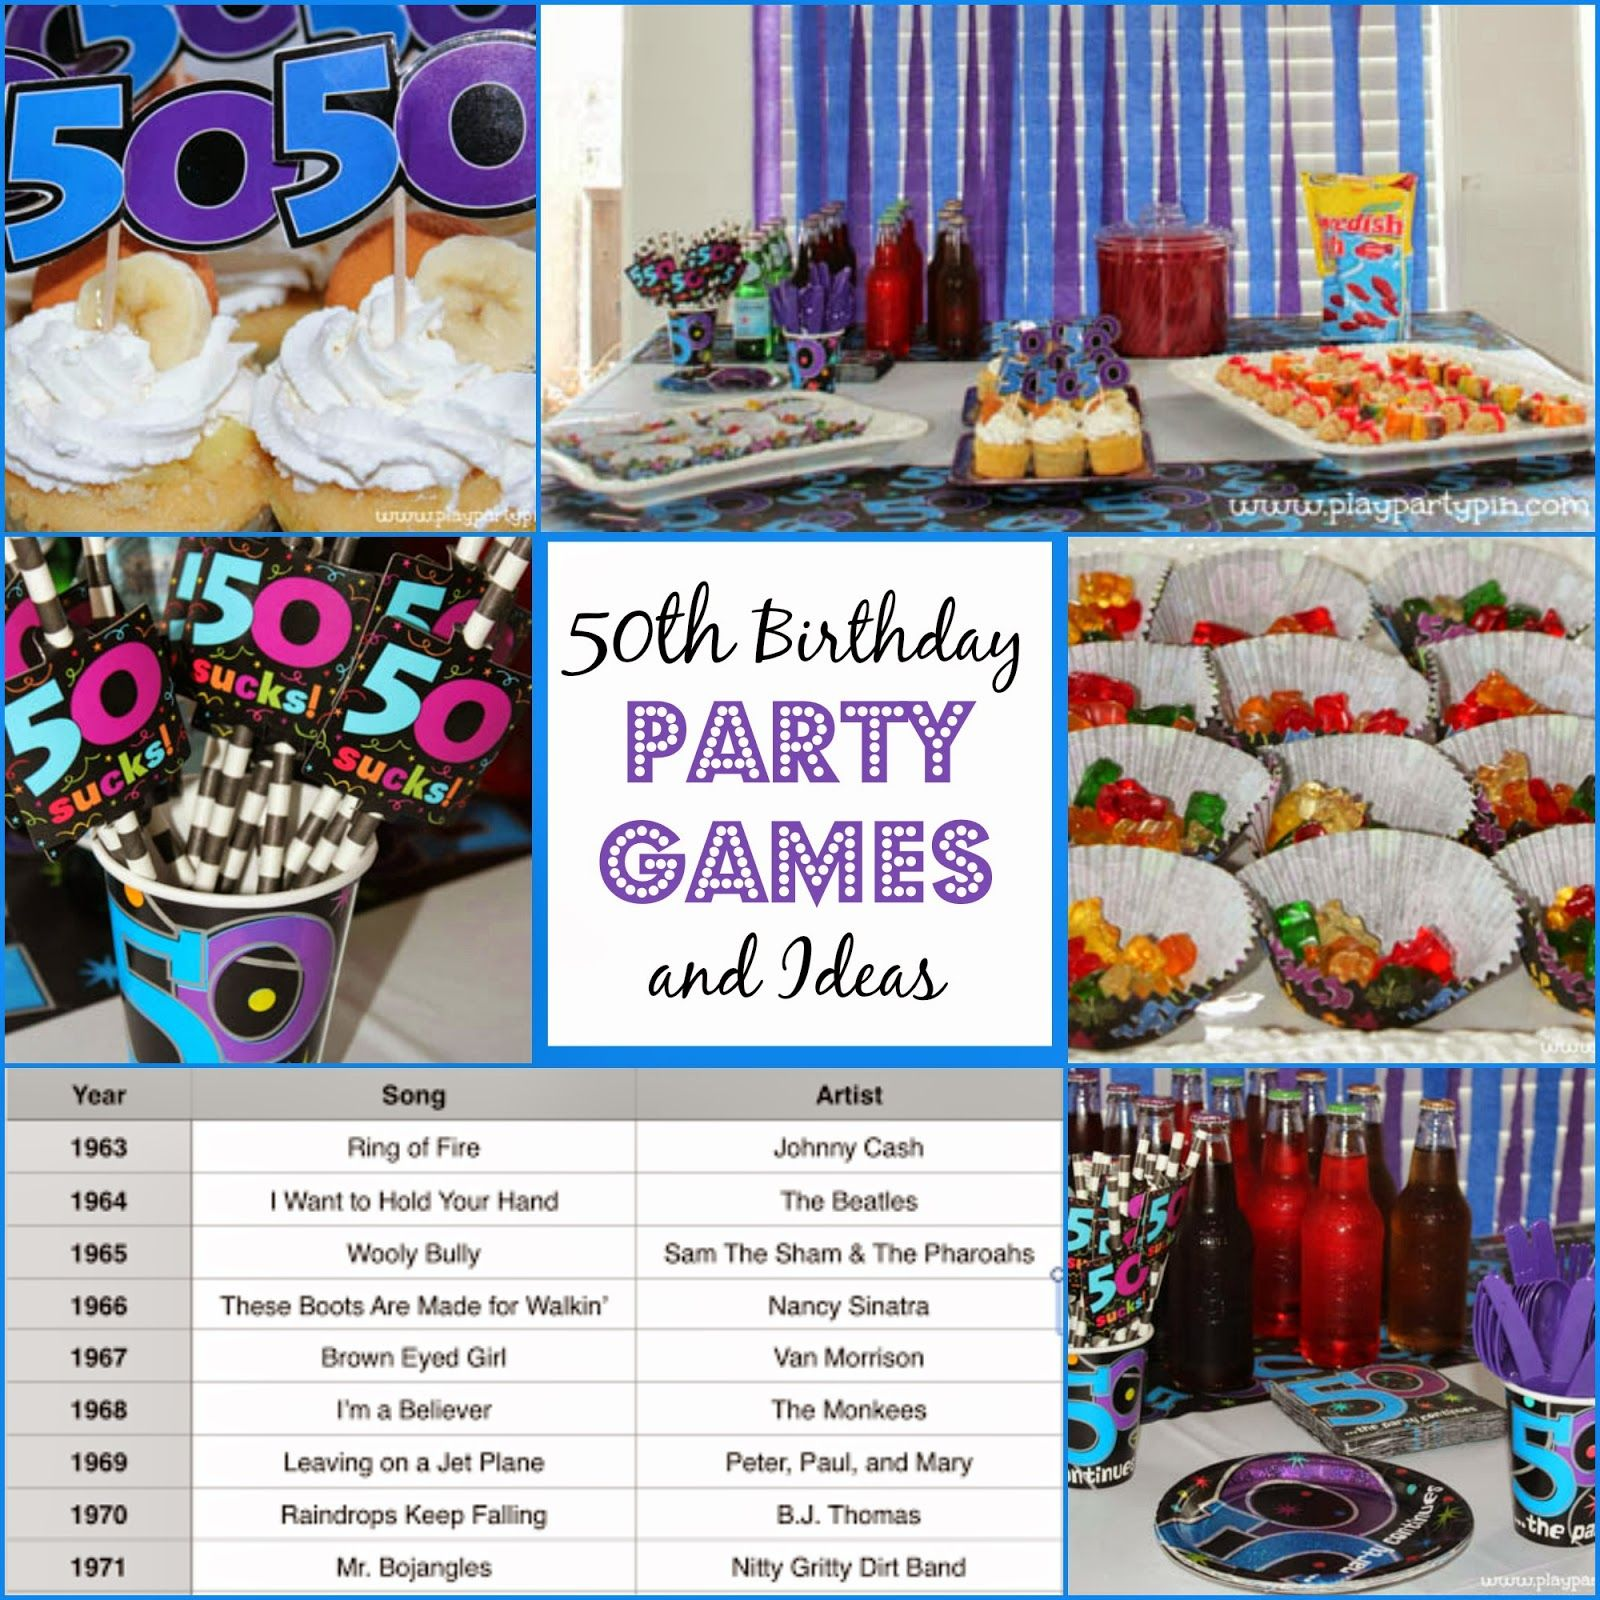 50th Birthday Party Ideas For Dad - Google Search